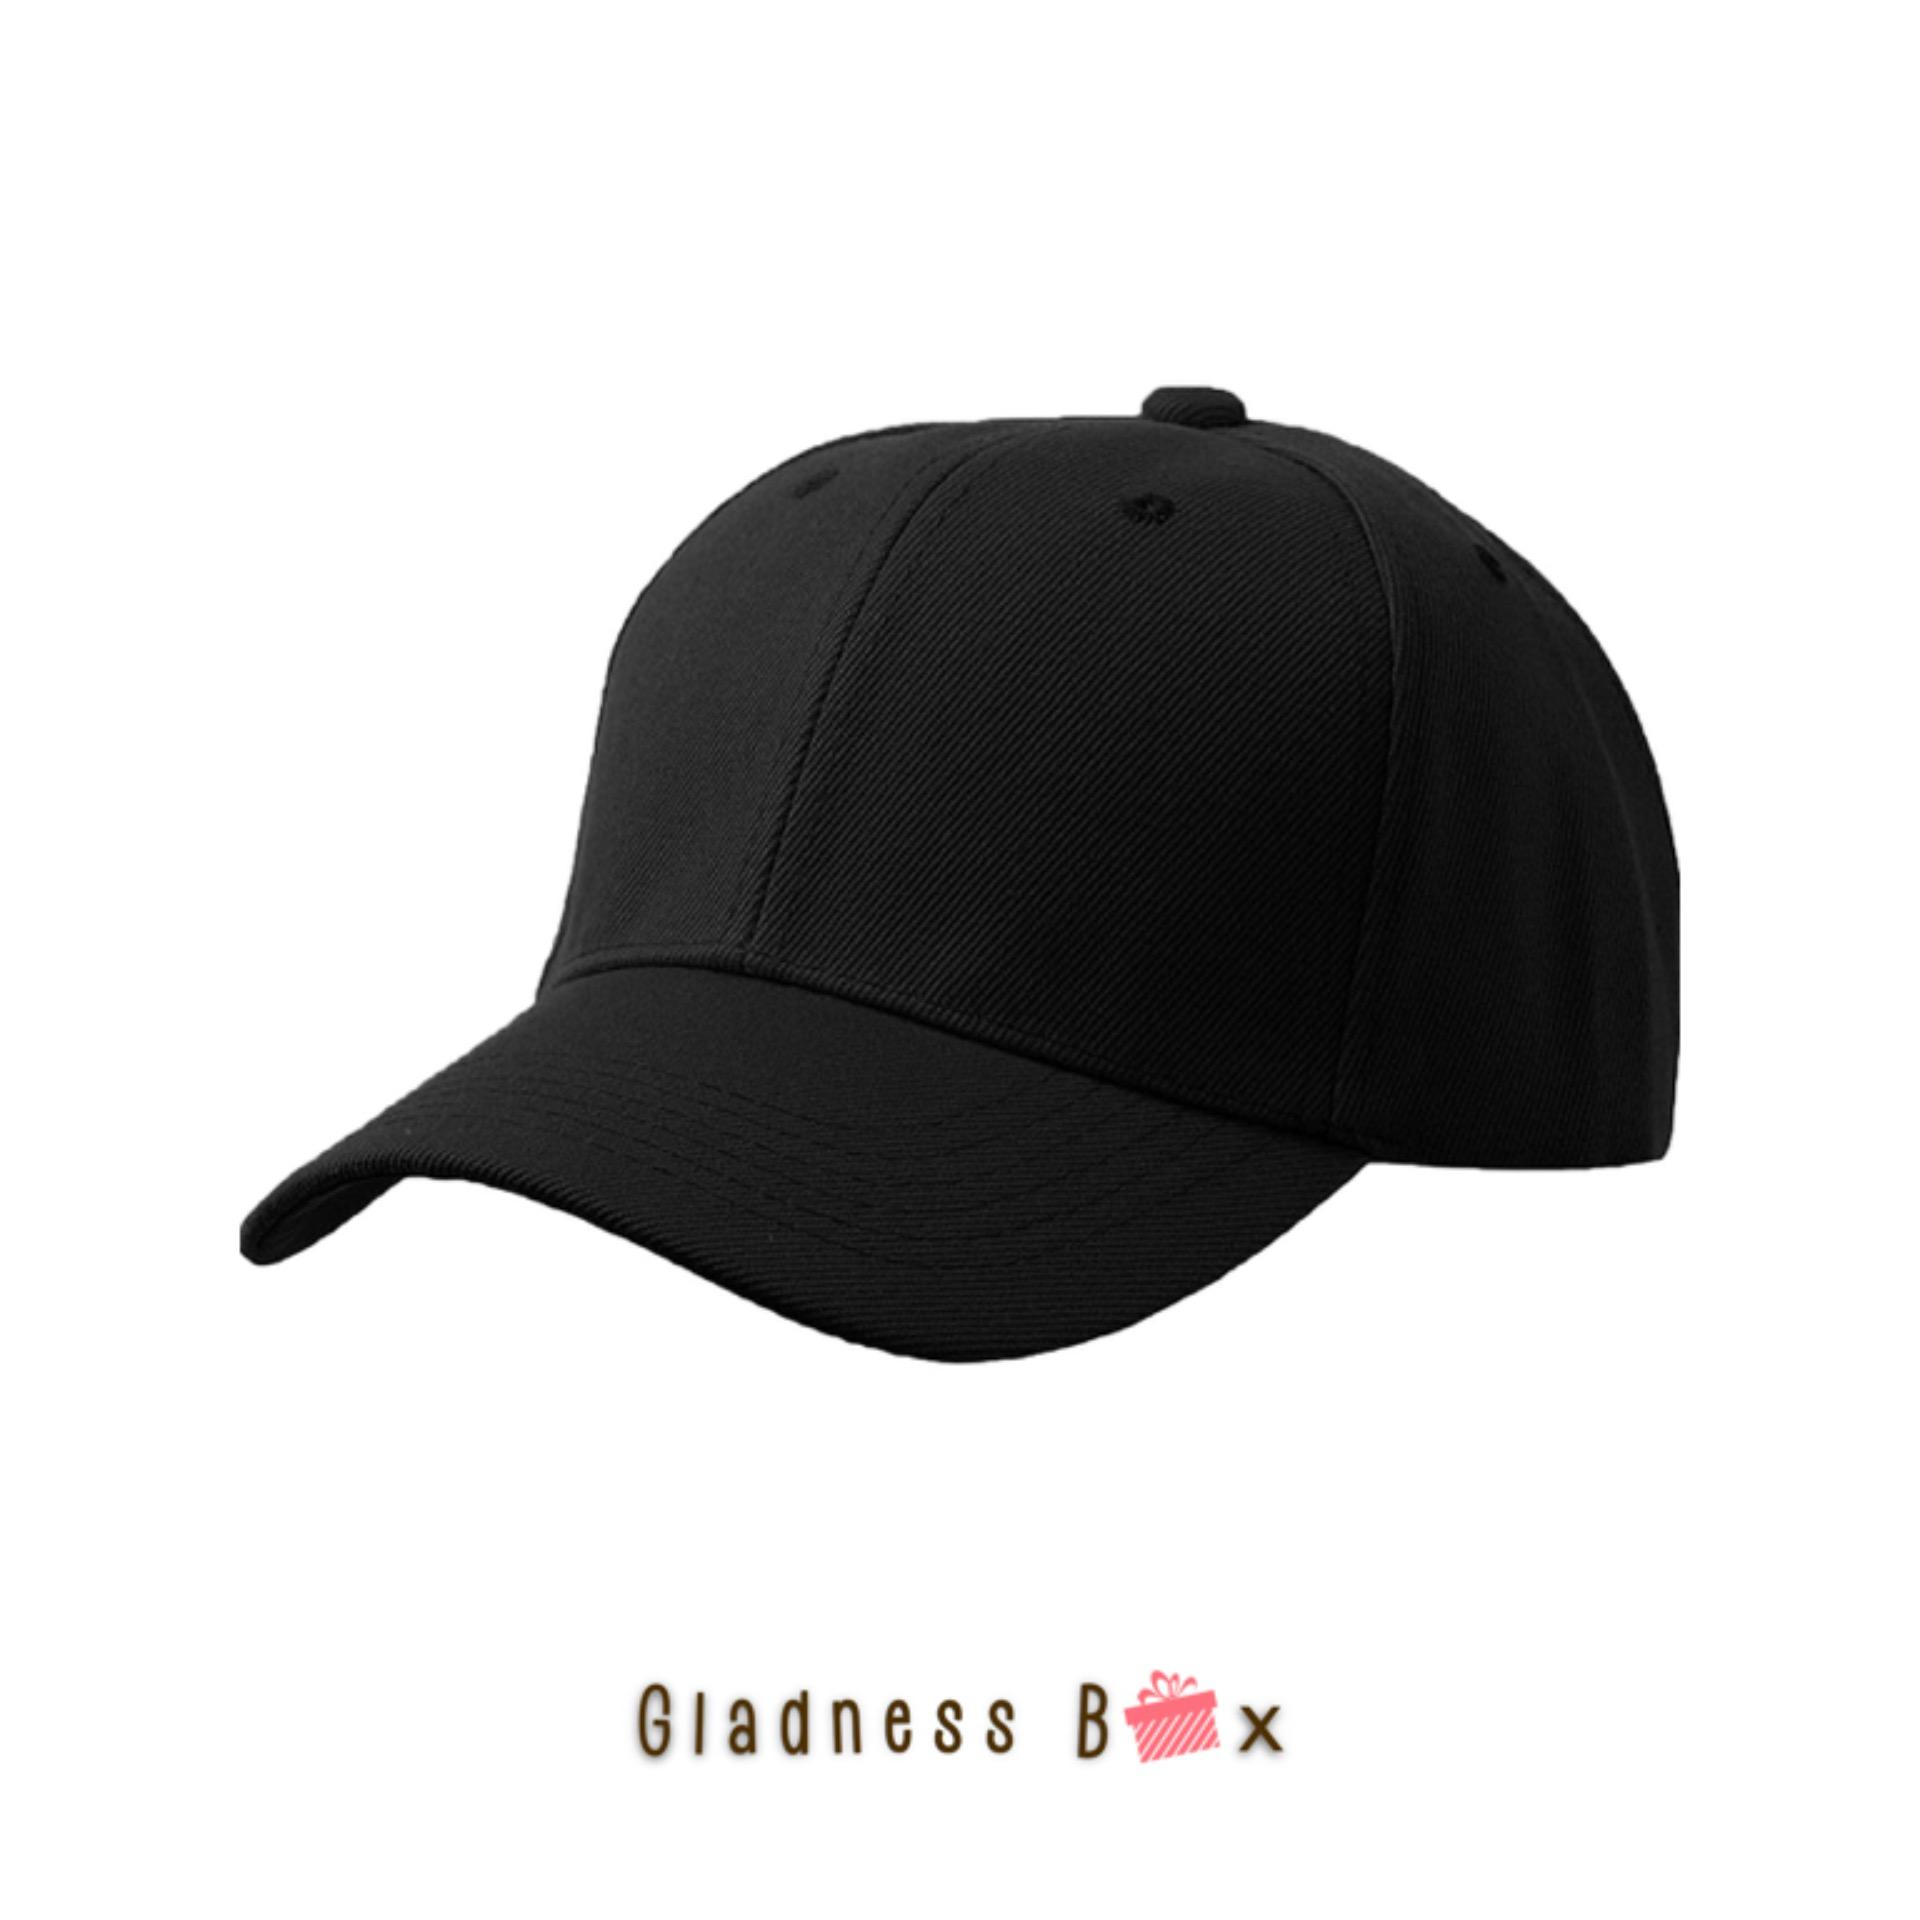 b77834373b4 Gladness Box High Quality Plain Baseball Cap for Men Women Unisex